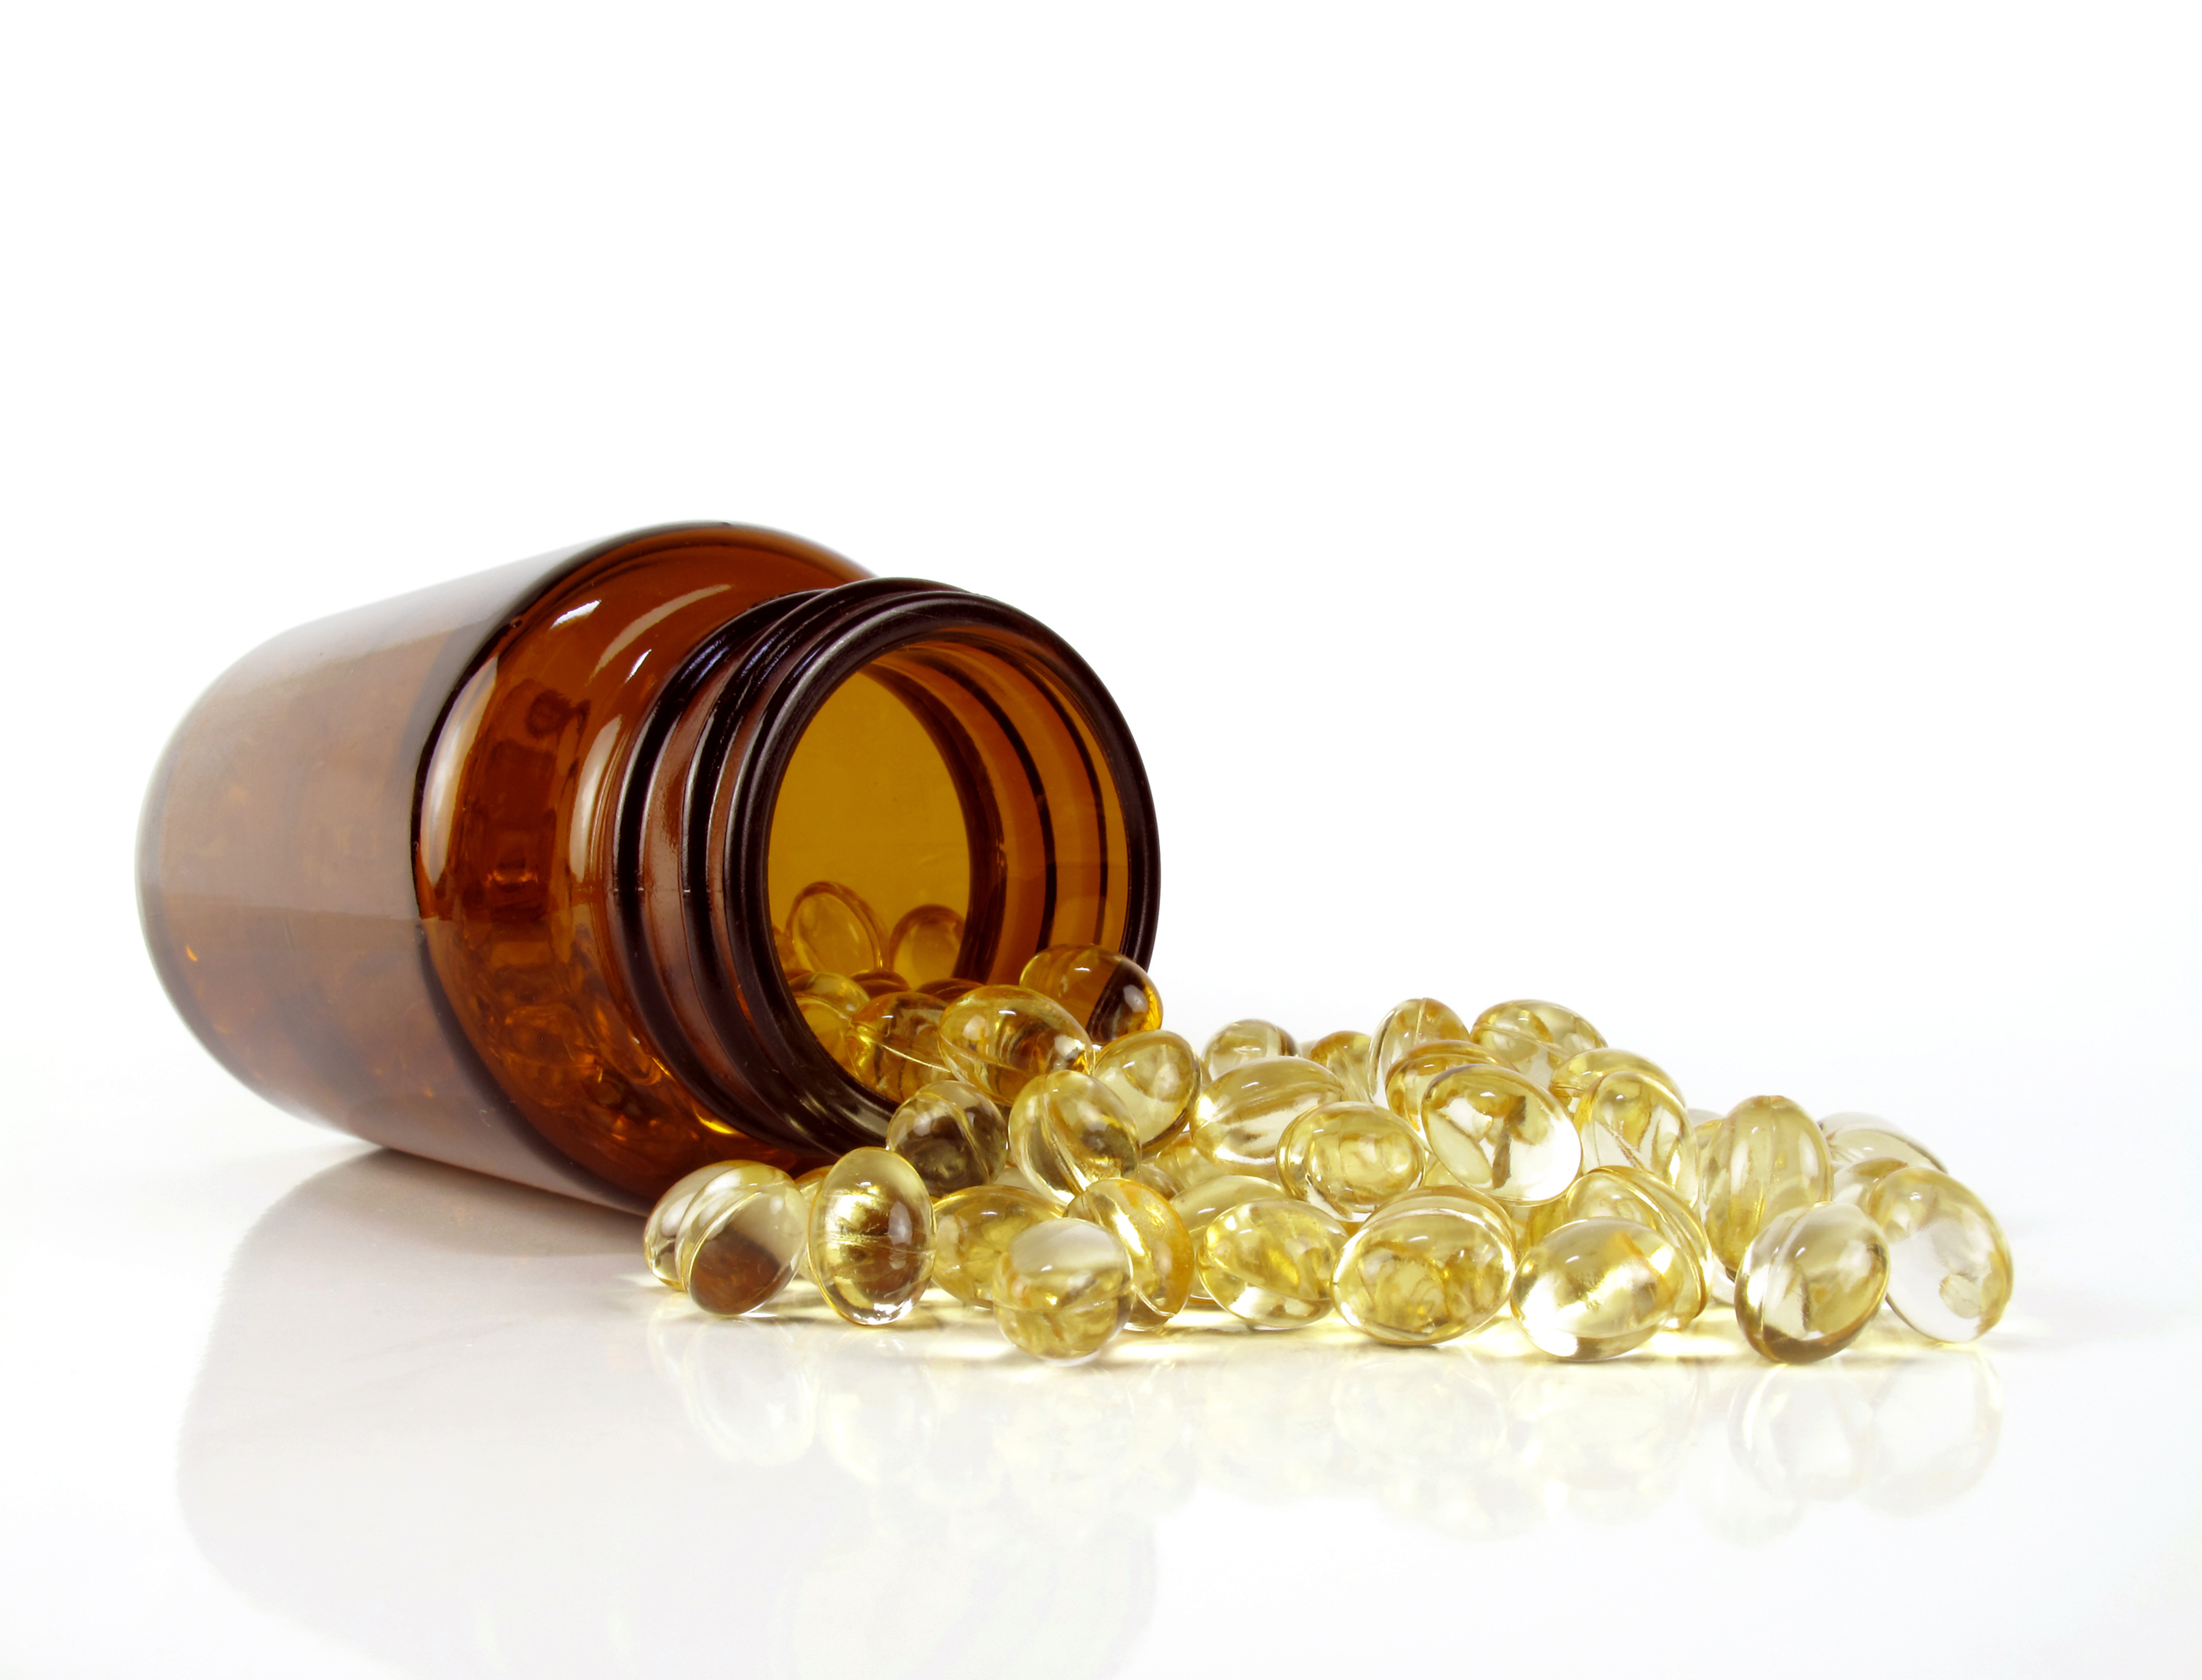 Fish Oil Capsules May Improve Rheumatoid Arthritis